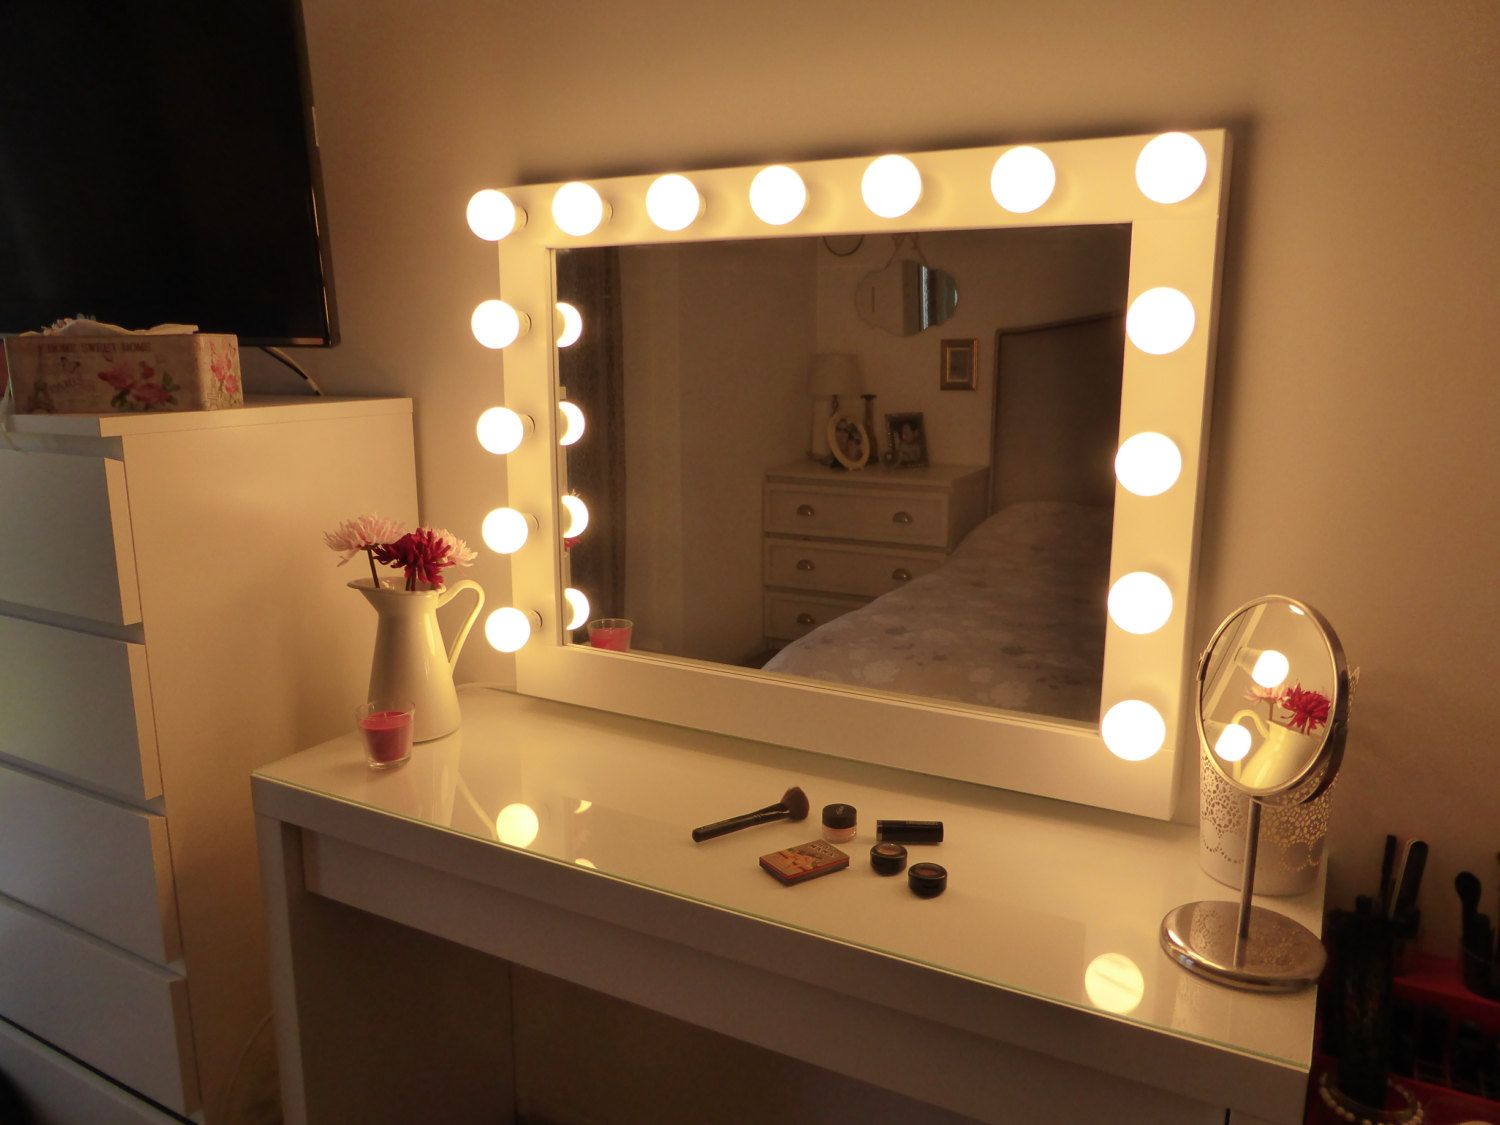 hollywood lighted vanity mirror large makeup mirror with lights wall hanging free standing. Black Bedroom Furniture Sets. Home Design Ideas